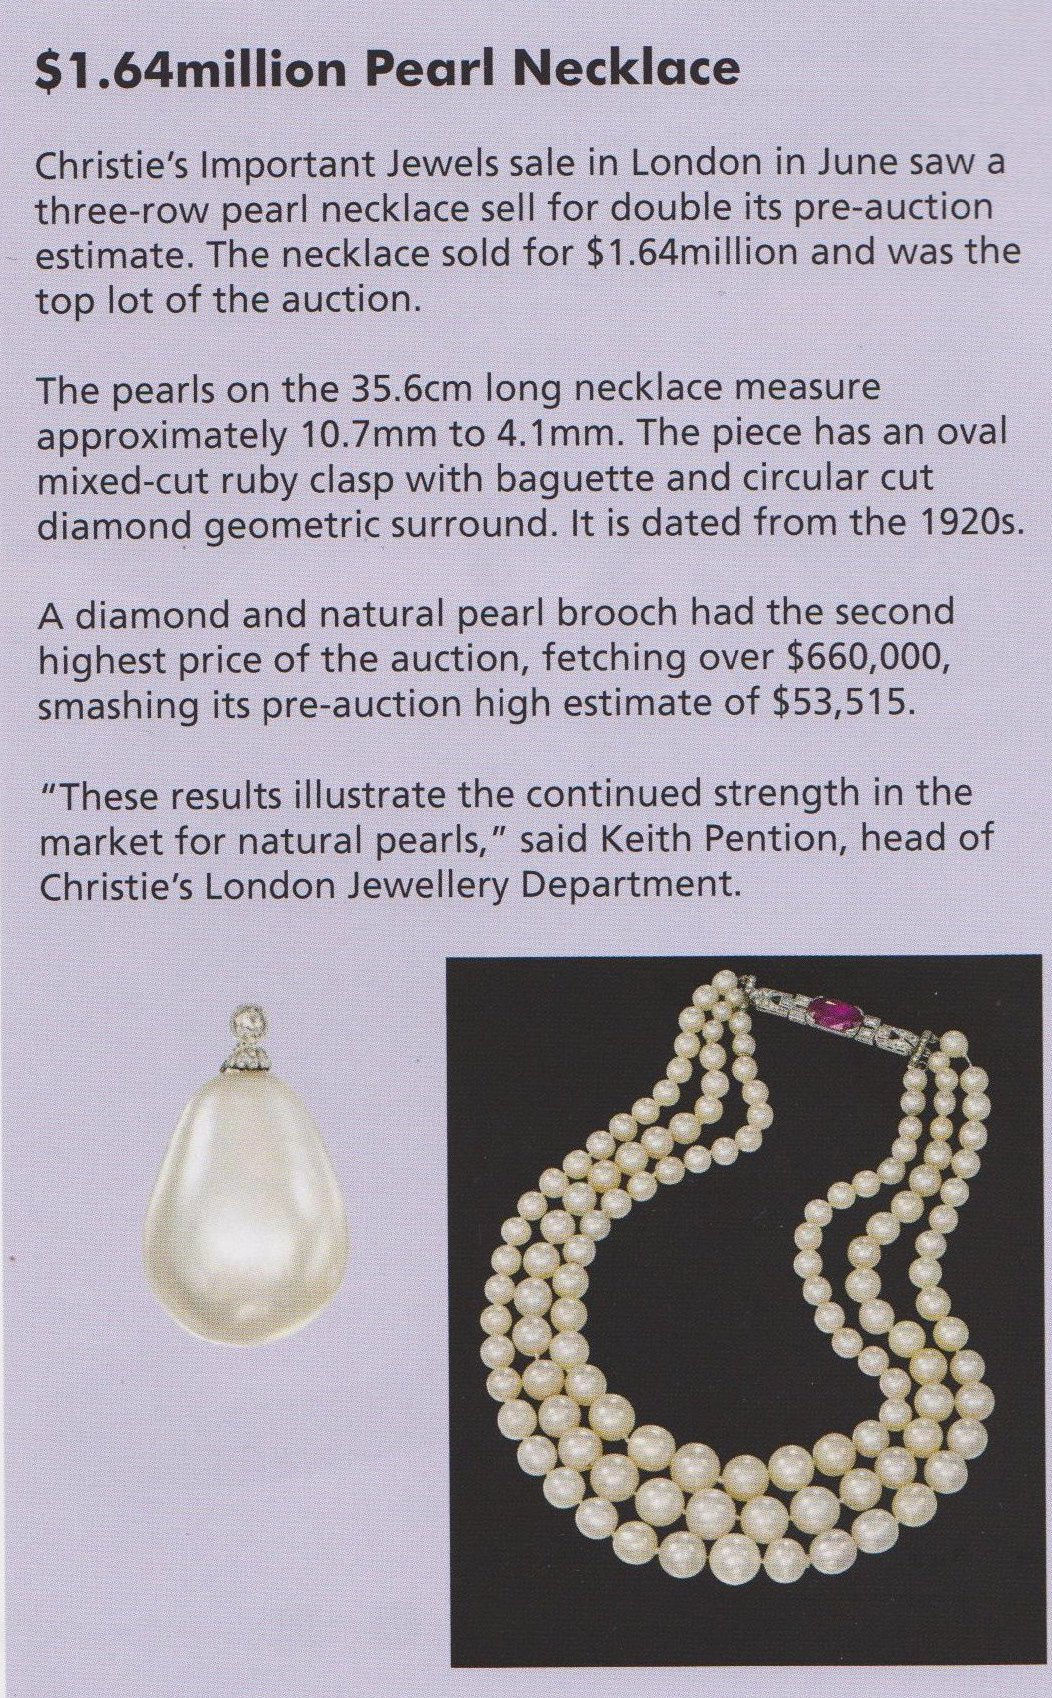 Christie's of London Jewel sale in June fetched 1.64 M for a pearl necklace